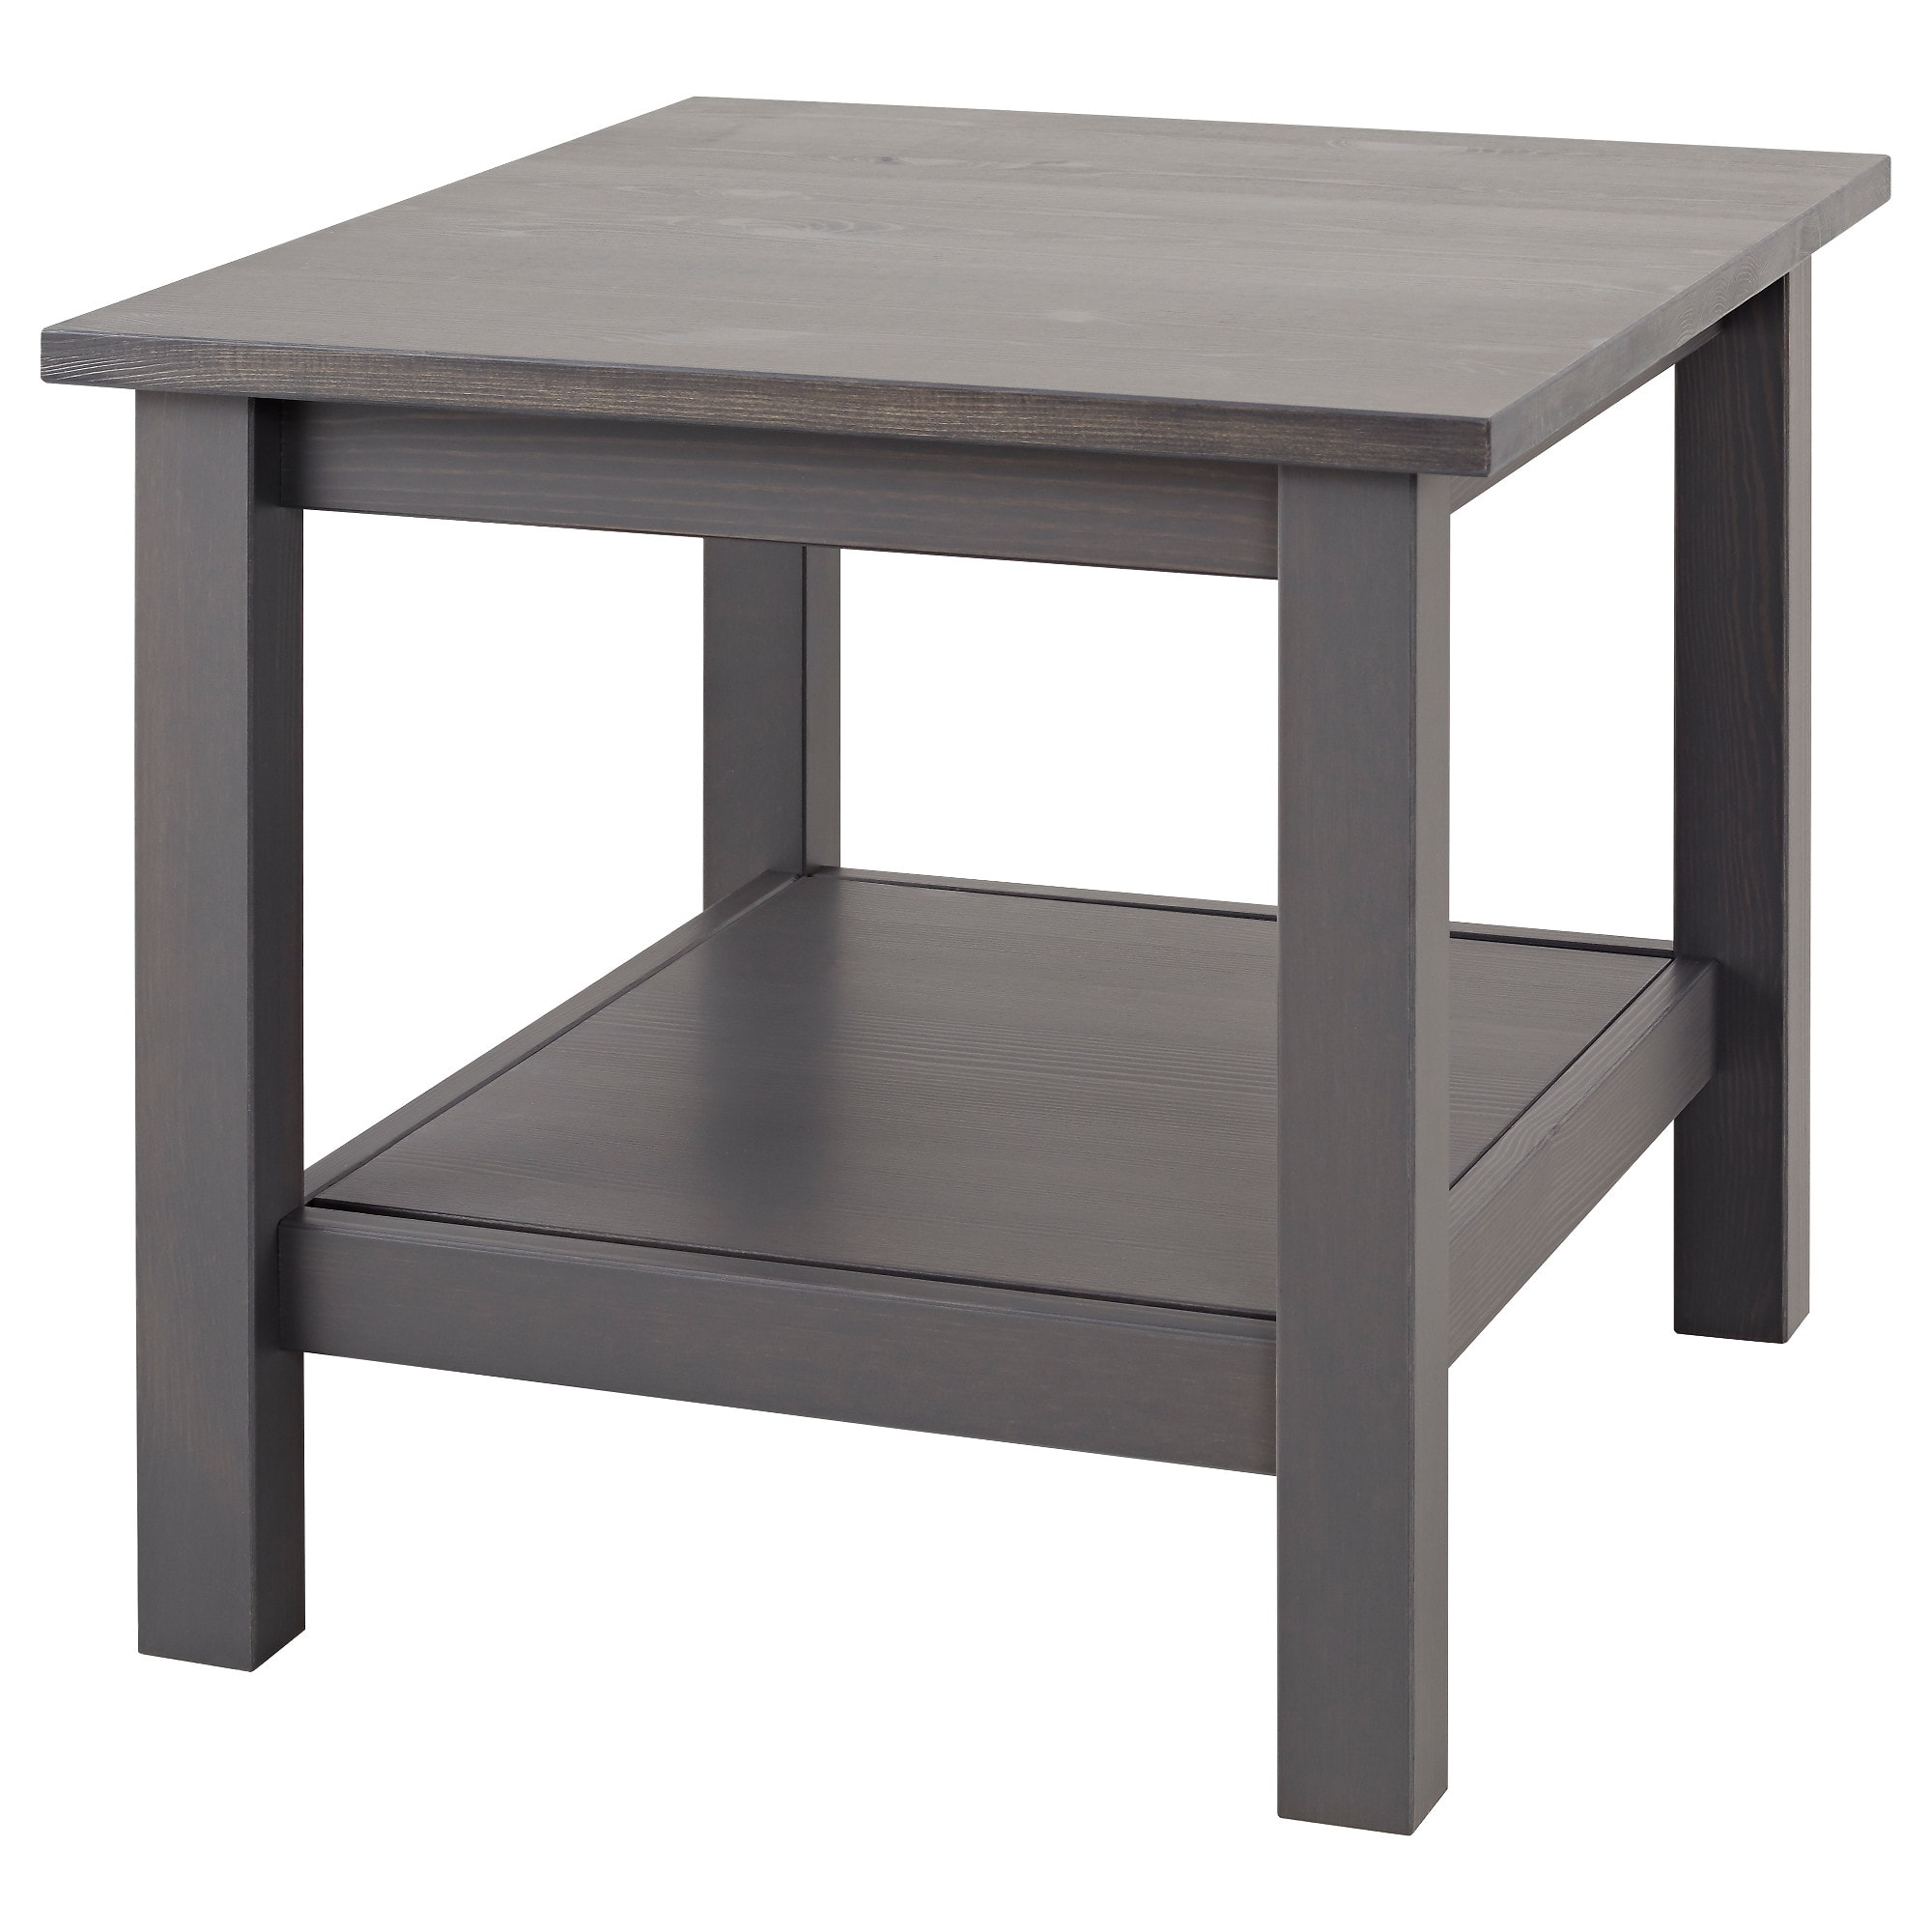 hemnes side table ikea outdoor accent feedback modern retro sofa small leather chairs for spaces mirrored entryway cabinet cocktail decor top bar height pedestal safavieh end